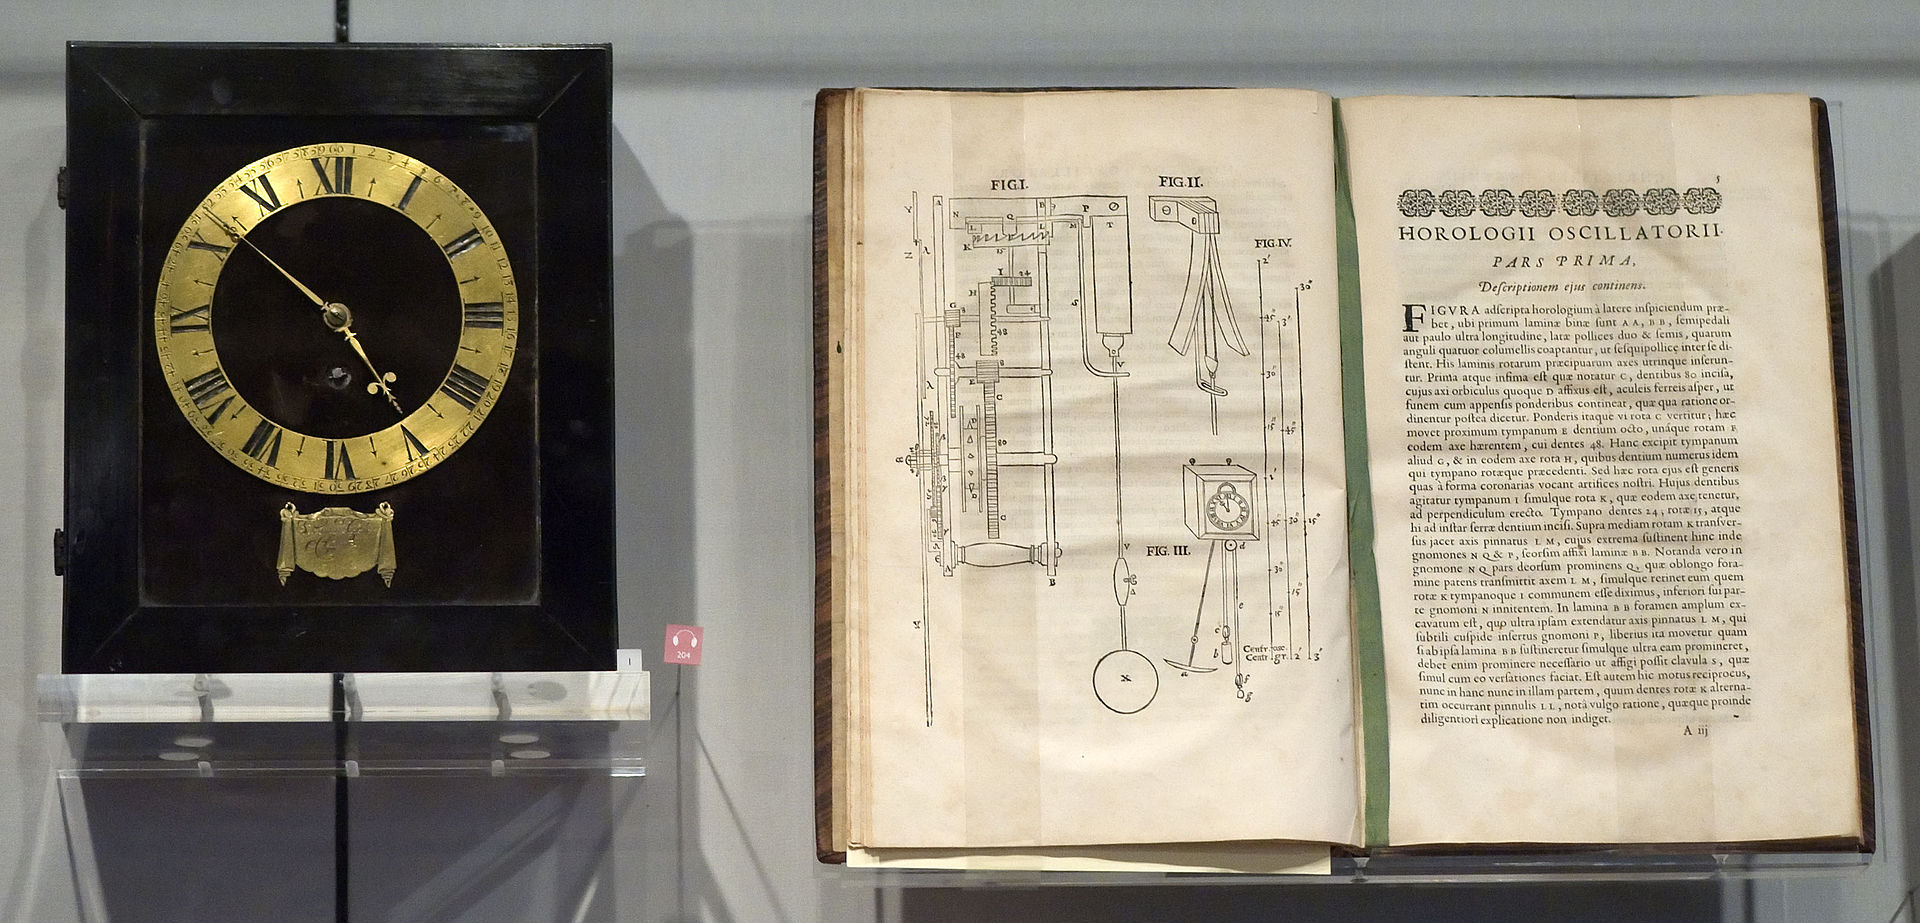 Christiaan_Huygens_Clock_and_Horologii_Oscillatorii